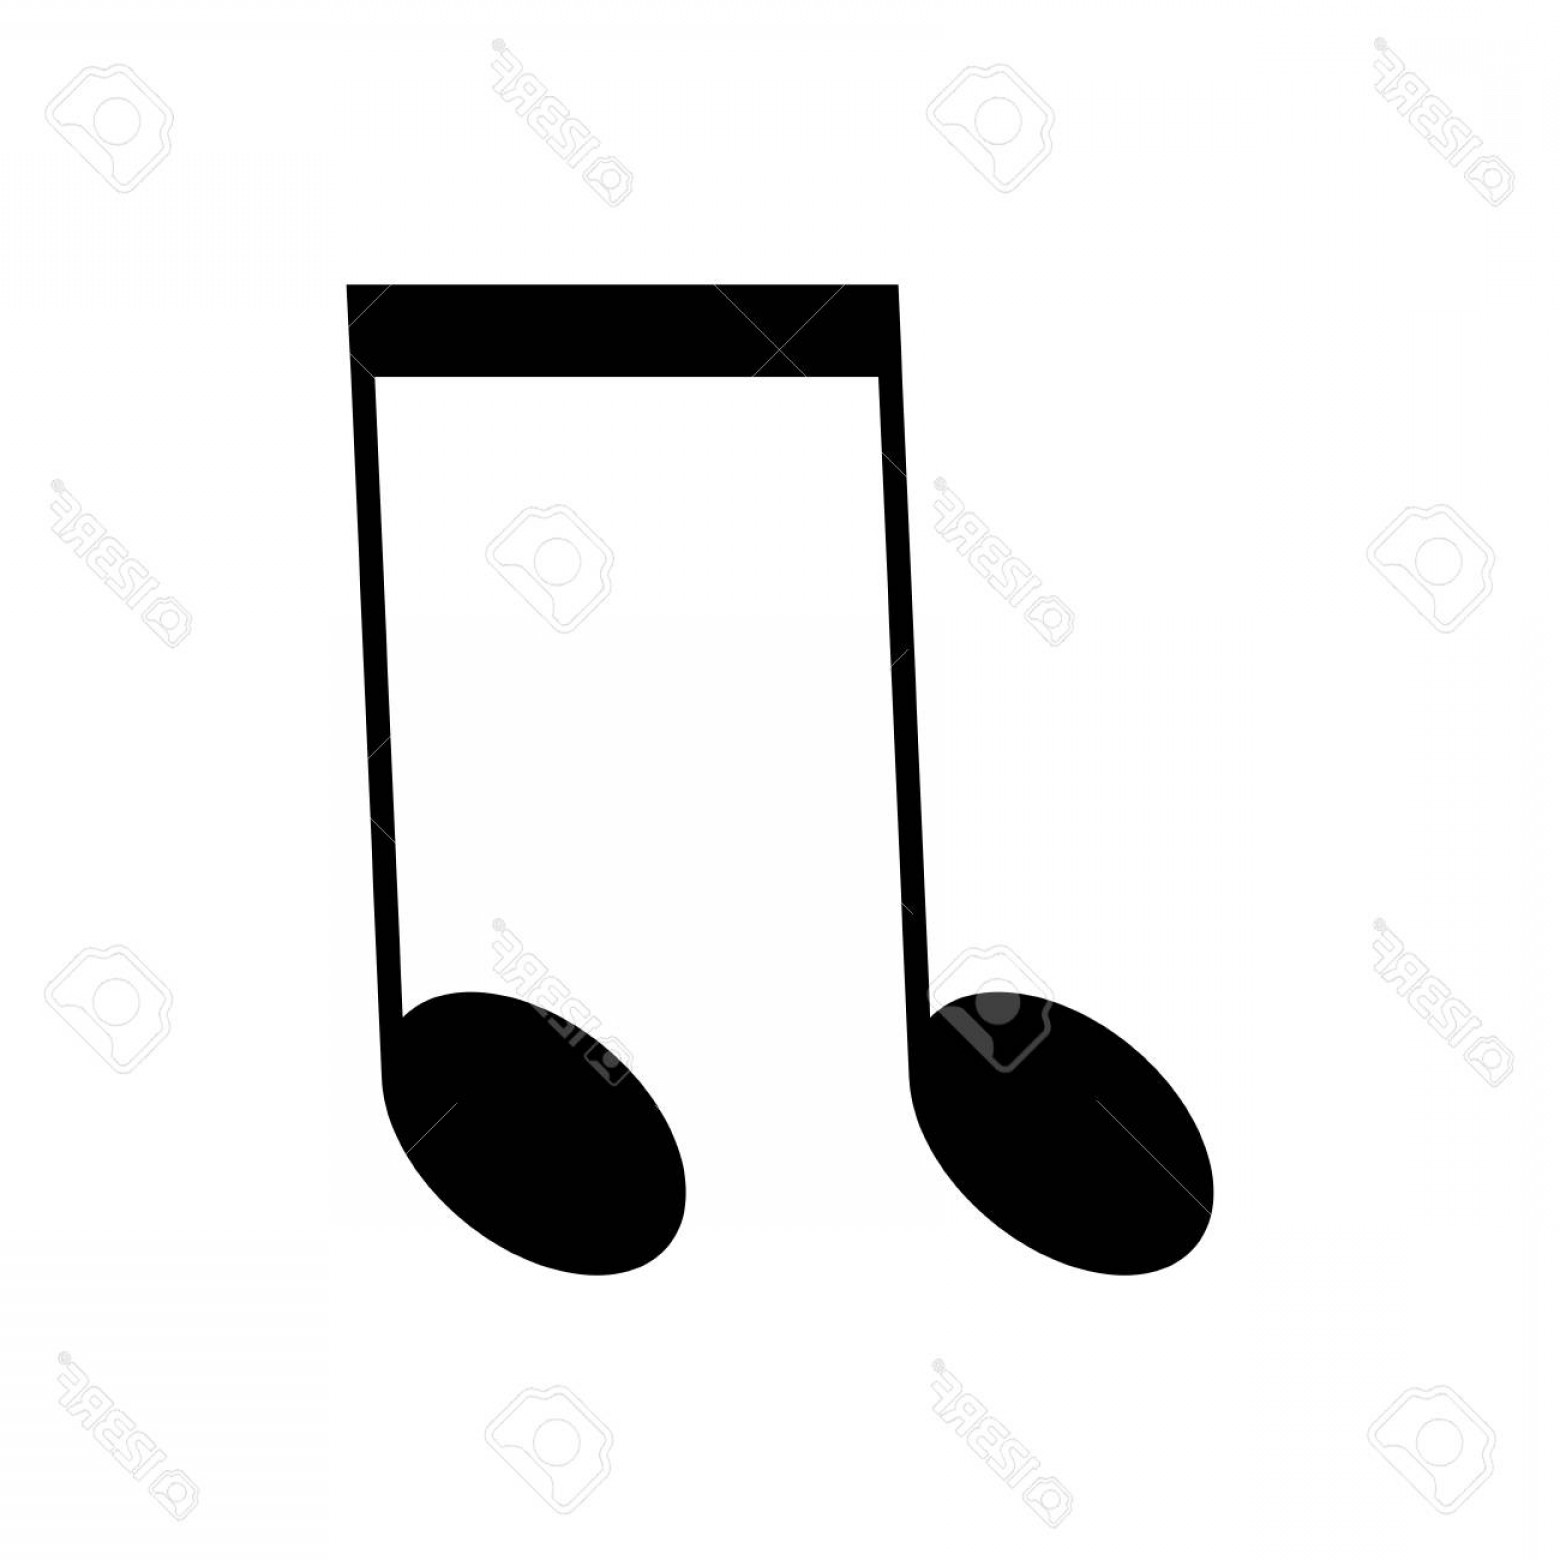 Eighth Note Vector: Photostock Illustration Isolated Musical Note Eighth Note Vector Illustration